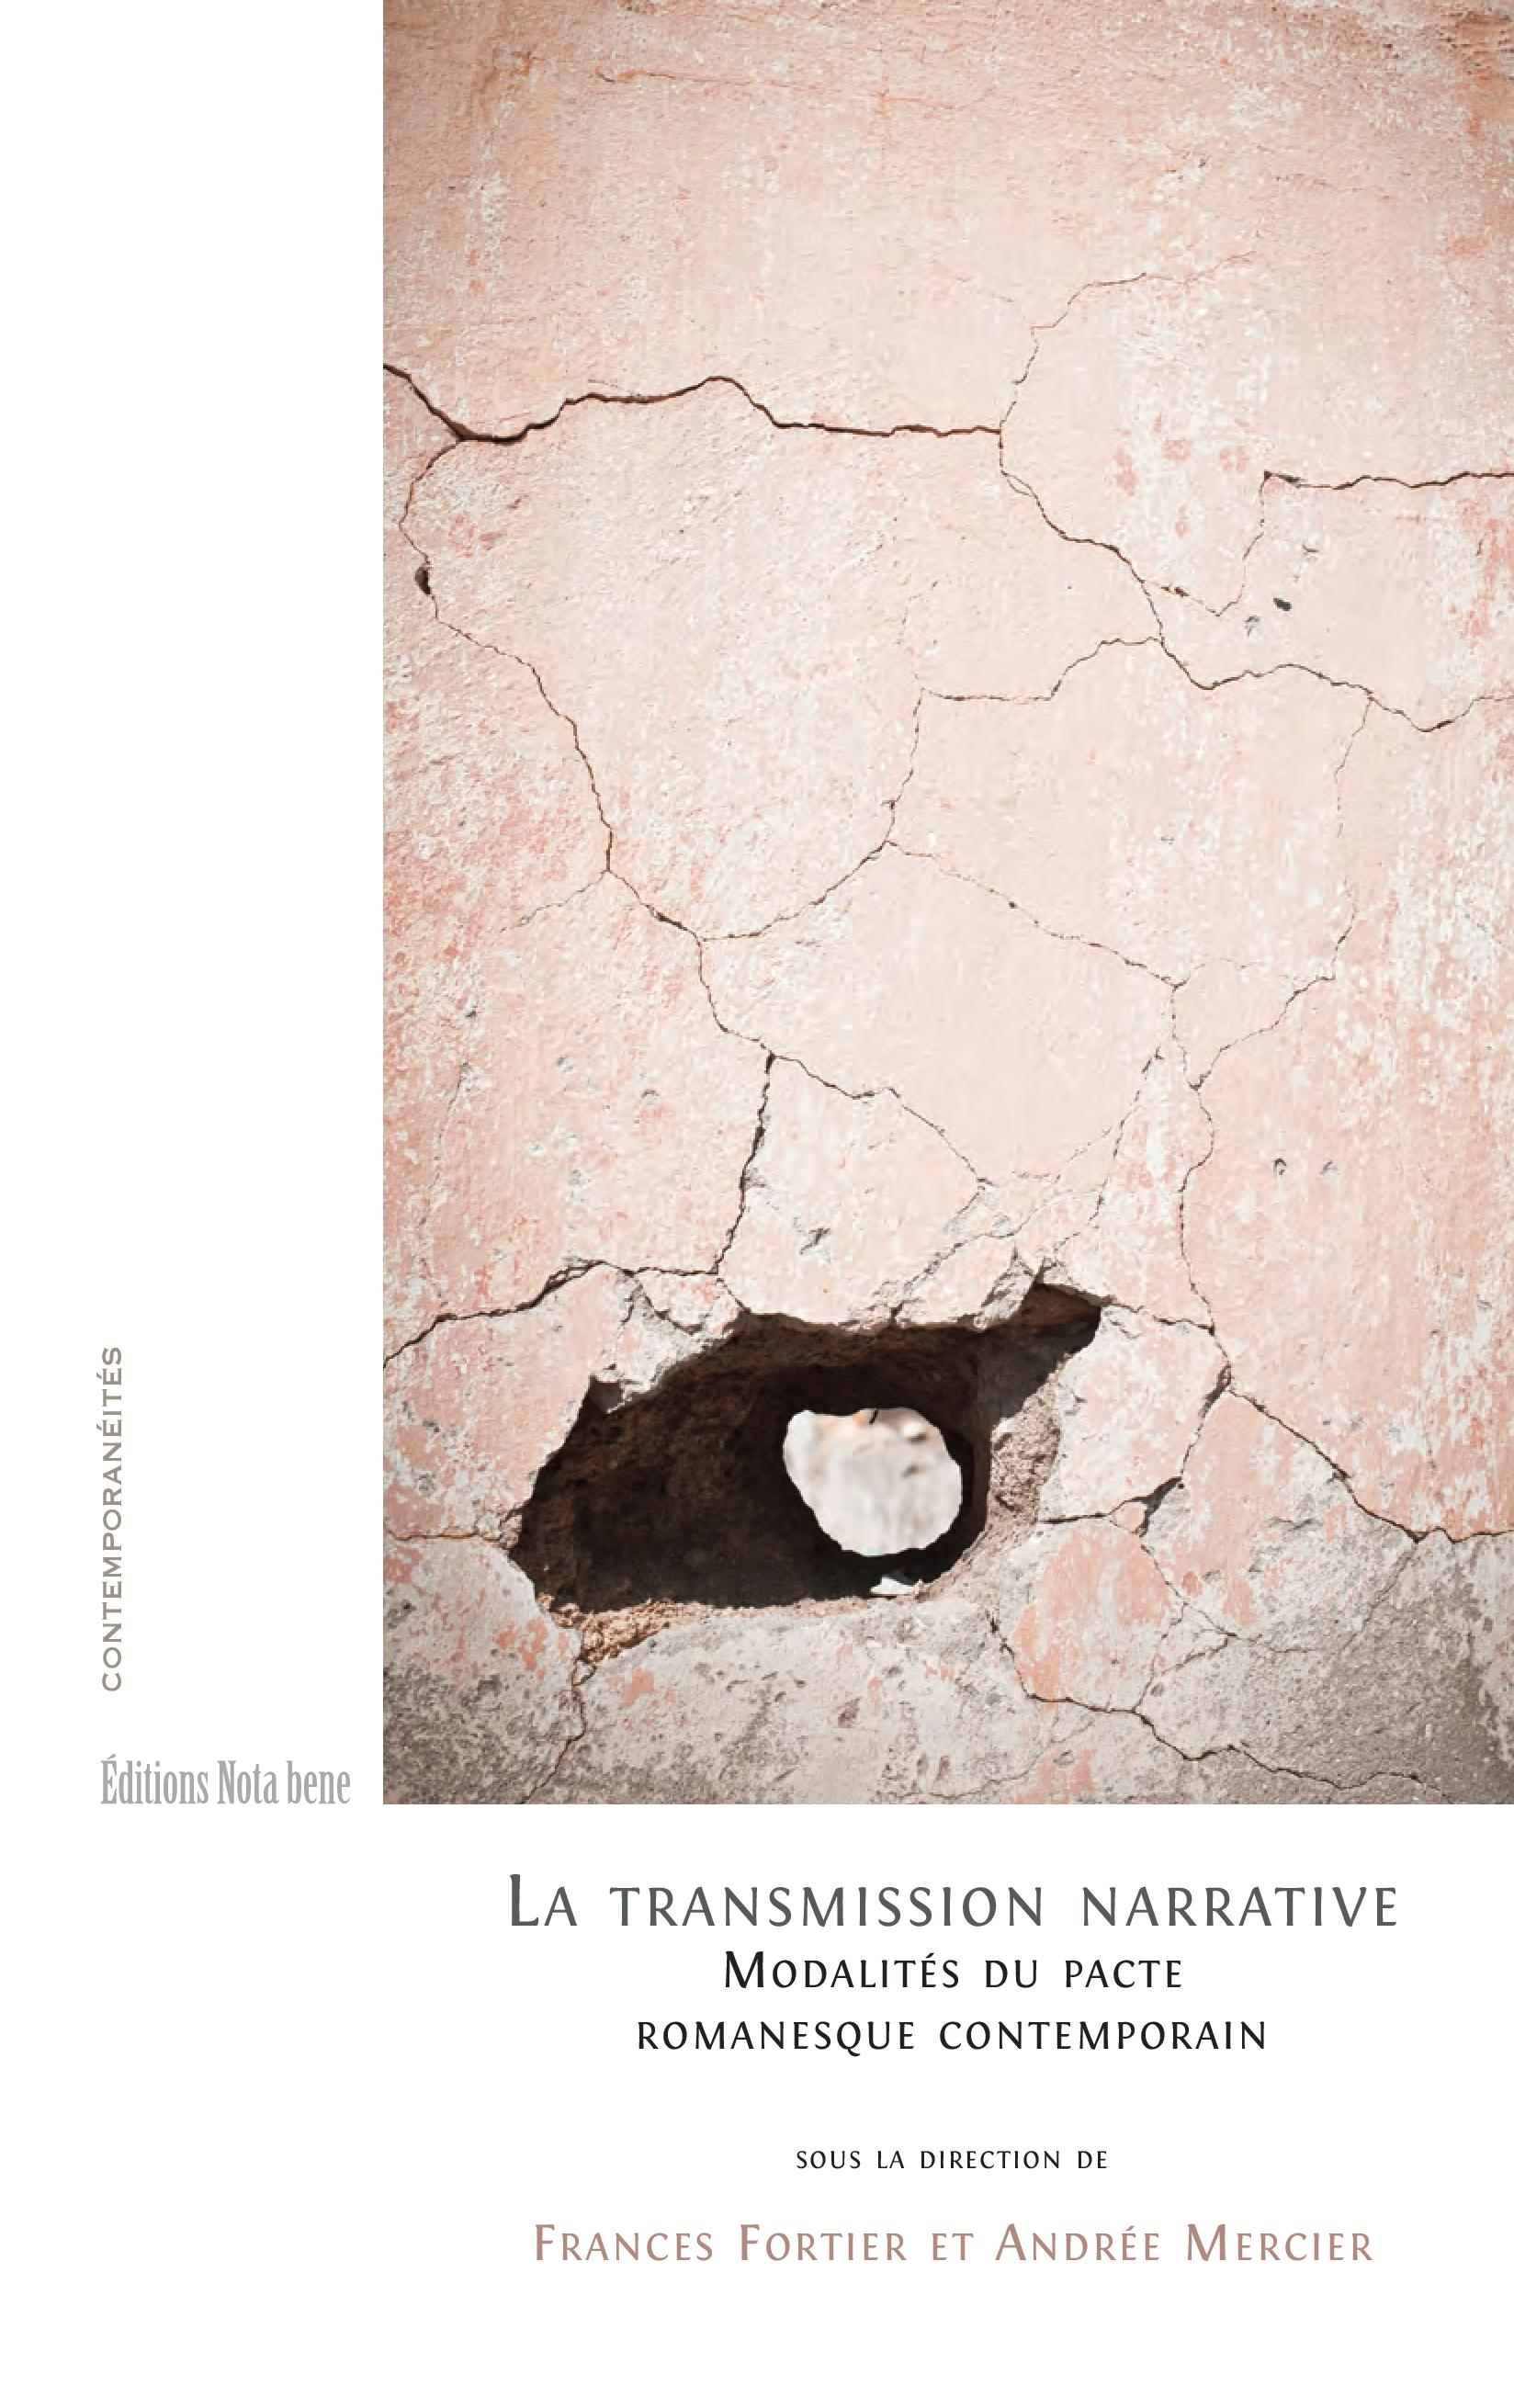 La transmission narrative